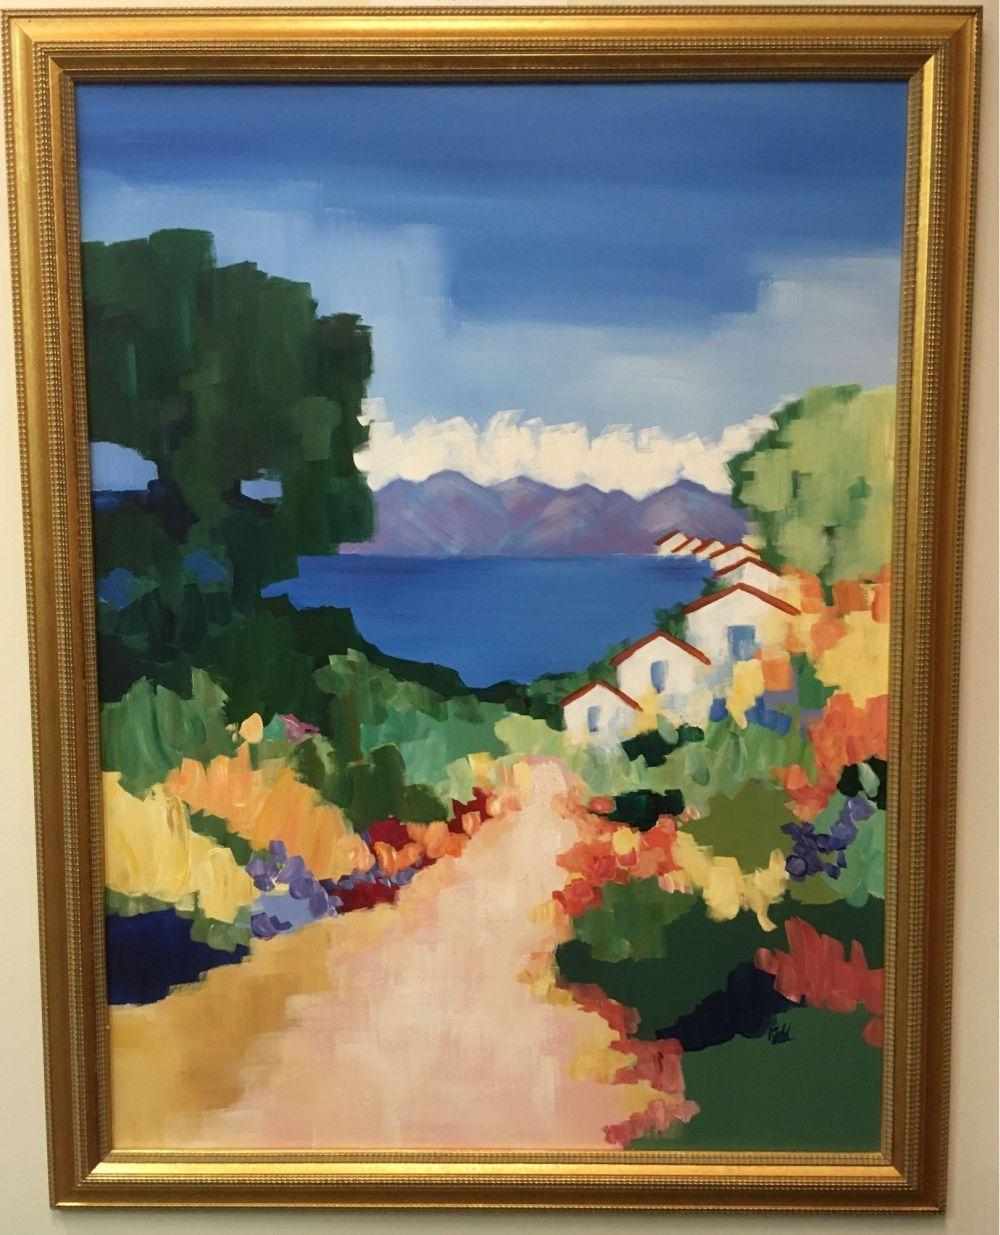 Lot 453: Large Impressionist Landscape Acrylic Painting On Canvas